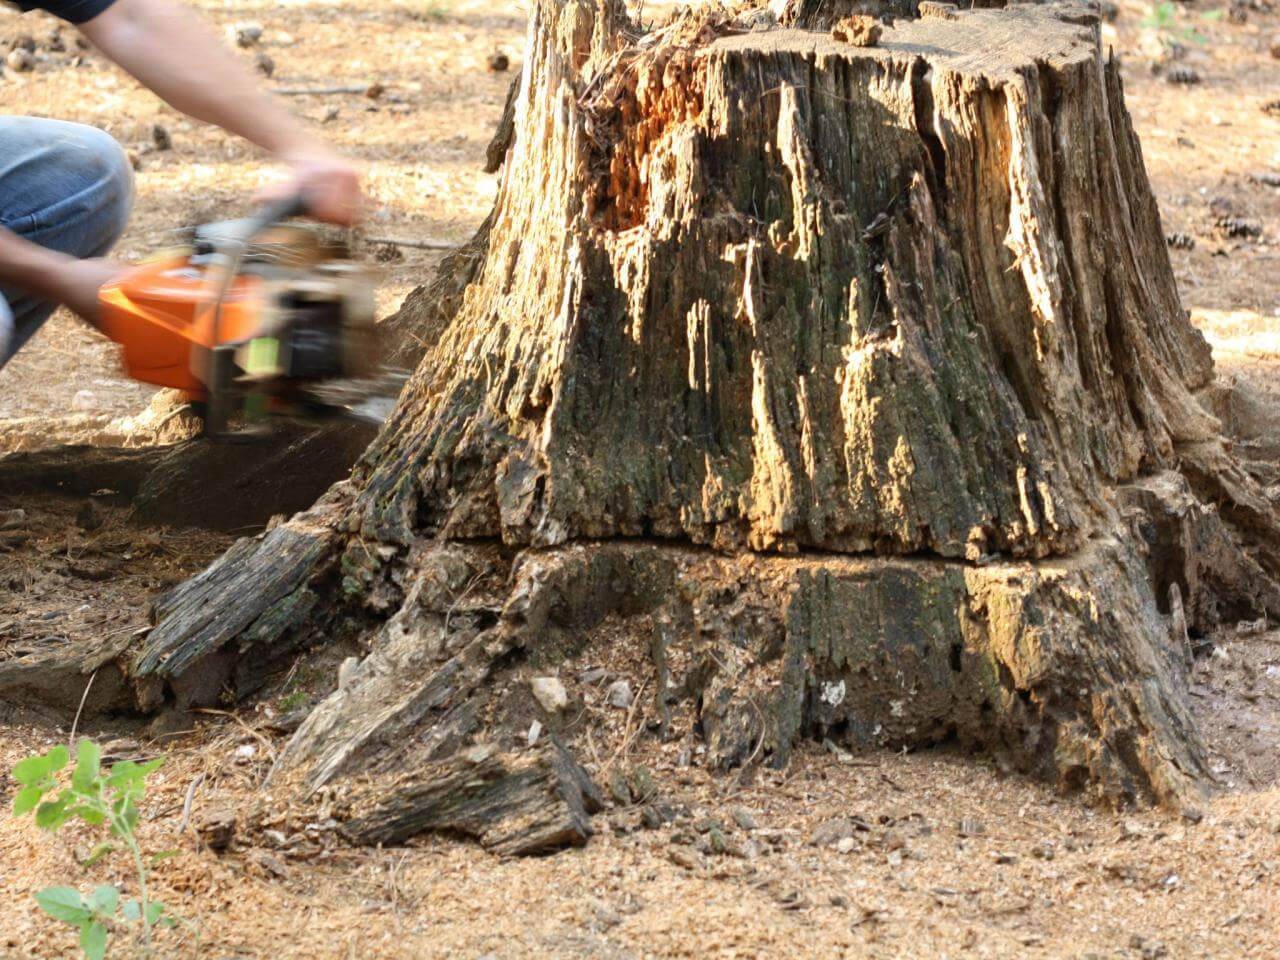 Stump Removal-Solana Beach CA Tree Trimming and Stump Grinding Services-We Offer Tree Trimming Services, Tree Removal, Tree Pruning, Tree Cutting, Residential and Commercial Tree Trimming Services, Storm Damage, Emergency Tree Removal, Land Clearing, Tree Companies, Tree Care Service, Stump Grinding, and we're the Best Tree Trimming Company Near You Guaranteed!